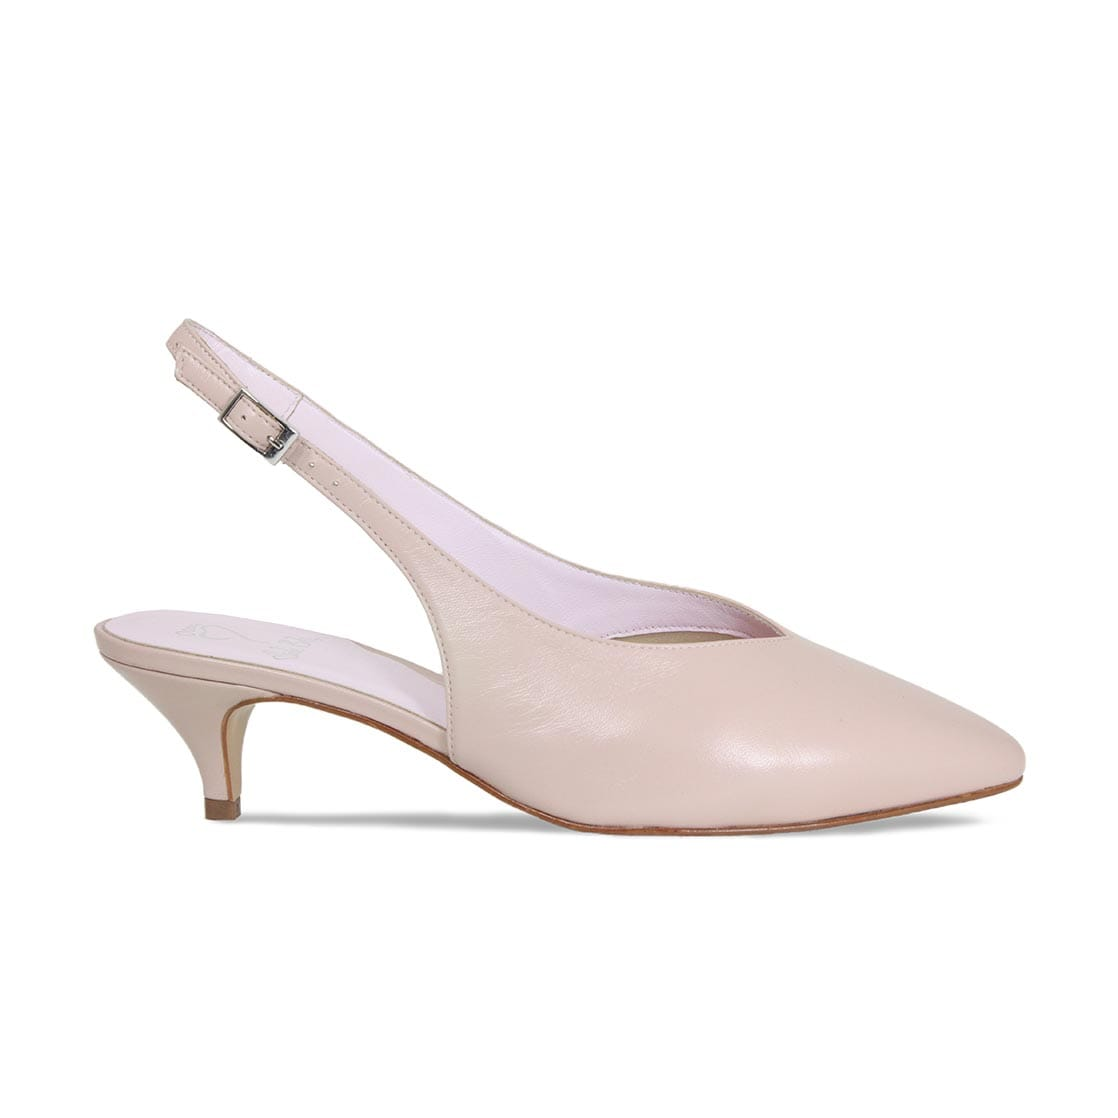 Blush Suede Sling-Back Kitten Pumps